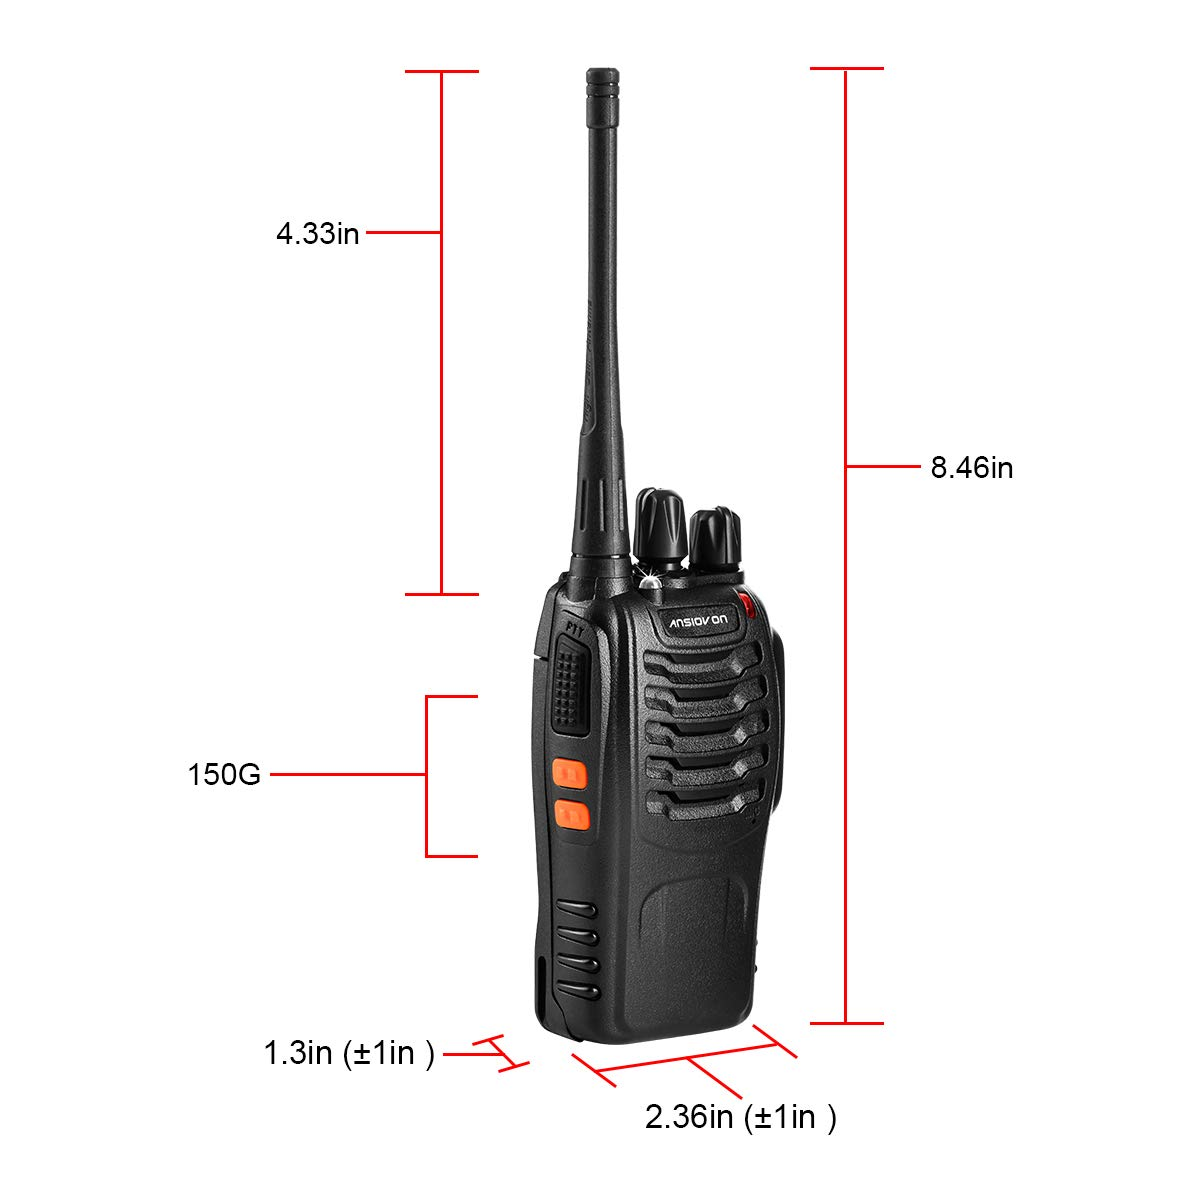 Ltd A-006 Include ANSIOVON Walkie Talkie-Rechargeable Long Range Two Way Radio-16 Channels-LED Flashlight -Earpiece-UHF 400-470Mhz-Professional Walky Talky-1500 Mah Rechargeable Li-ion Battery Shenzhen Xinchaohui Trading Co -4 Pack